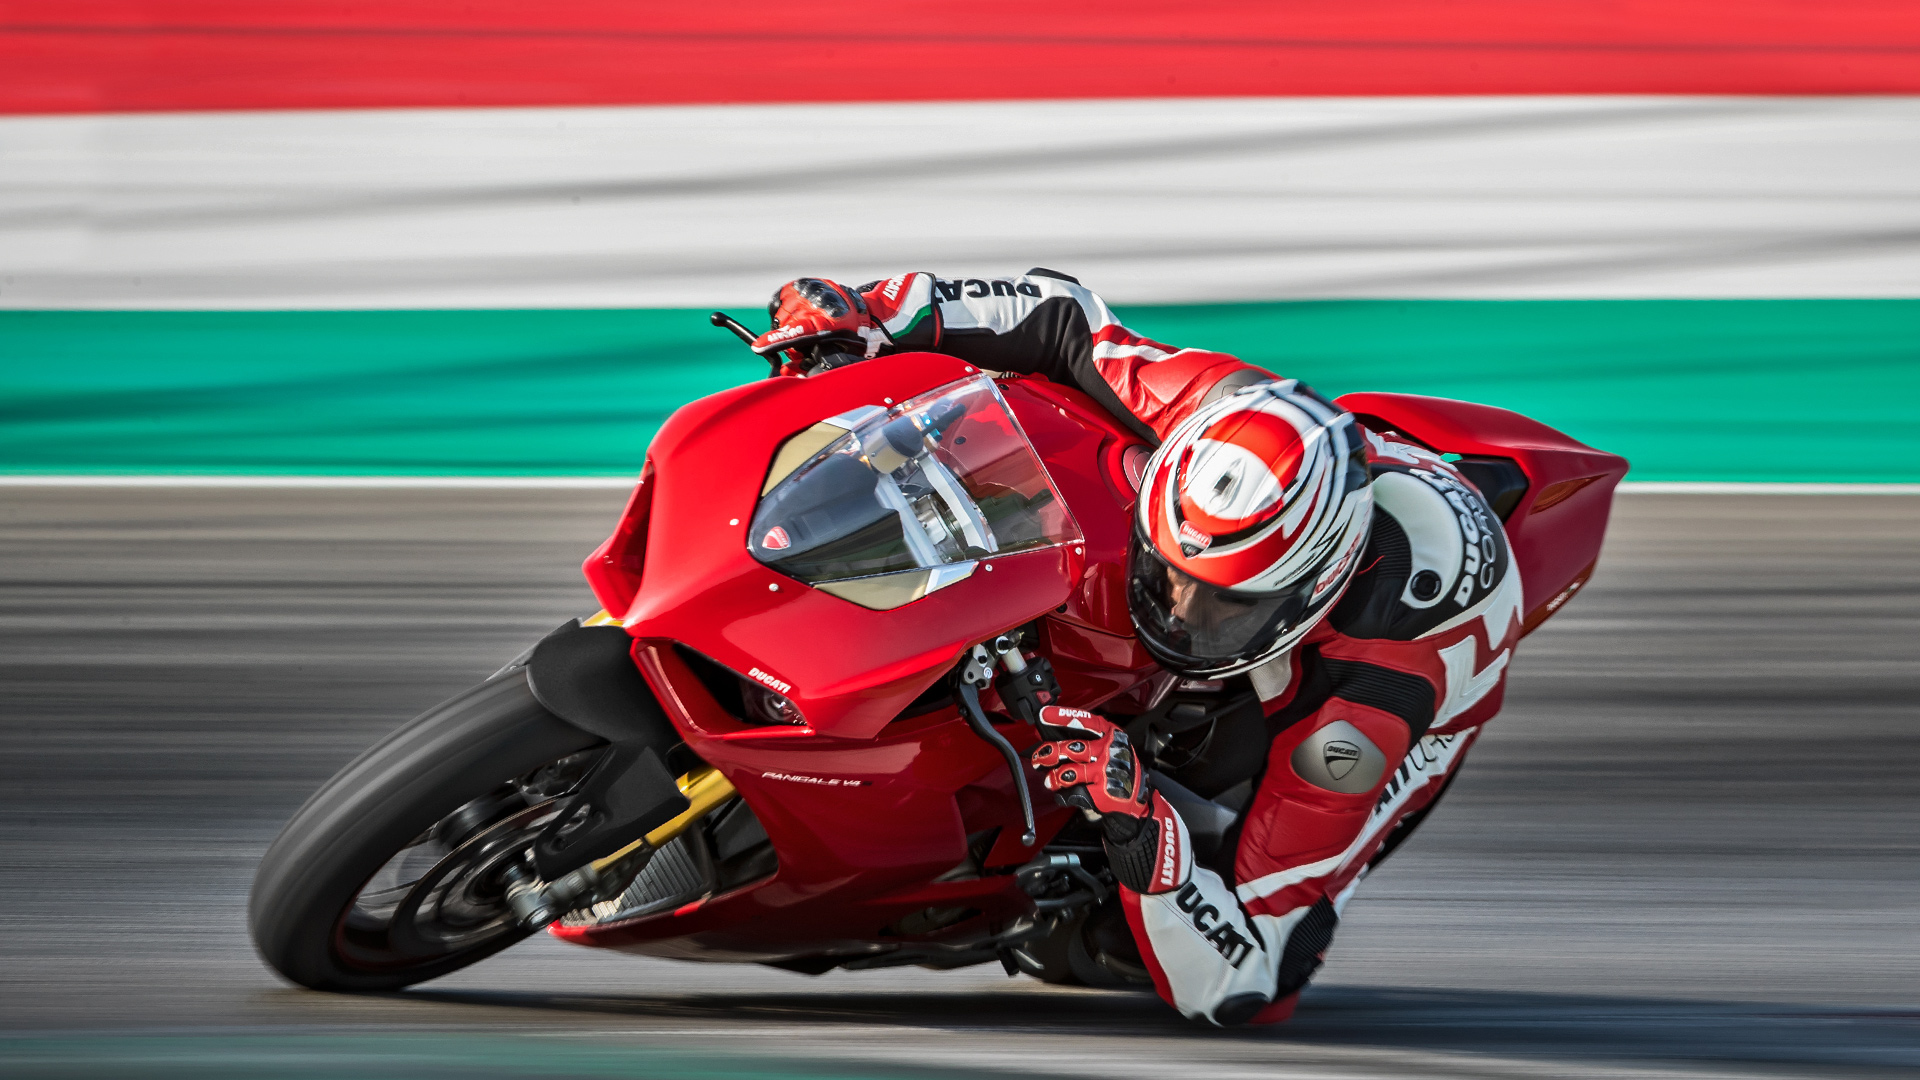 Panigale V4 My 19 Ducati Superbike Wiring Diagram According To The Tradition Of Sportbikes Double Red Arch Parking Light Makes Unmistakable Just Like Its Aggressive